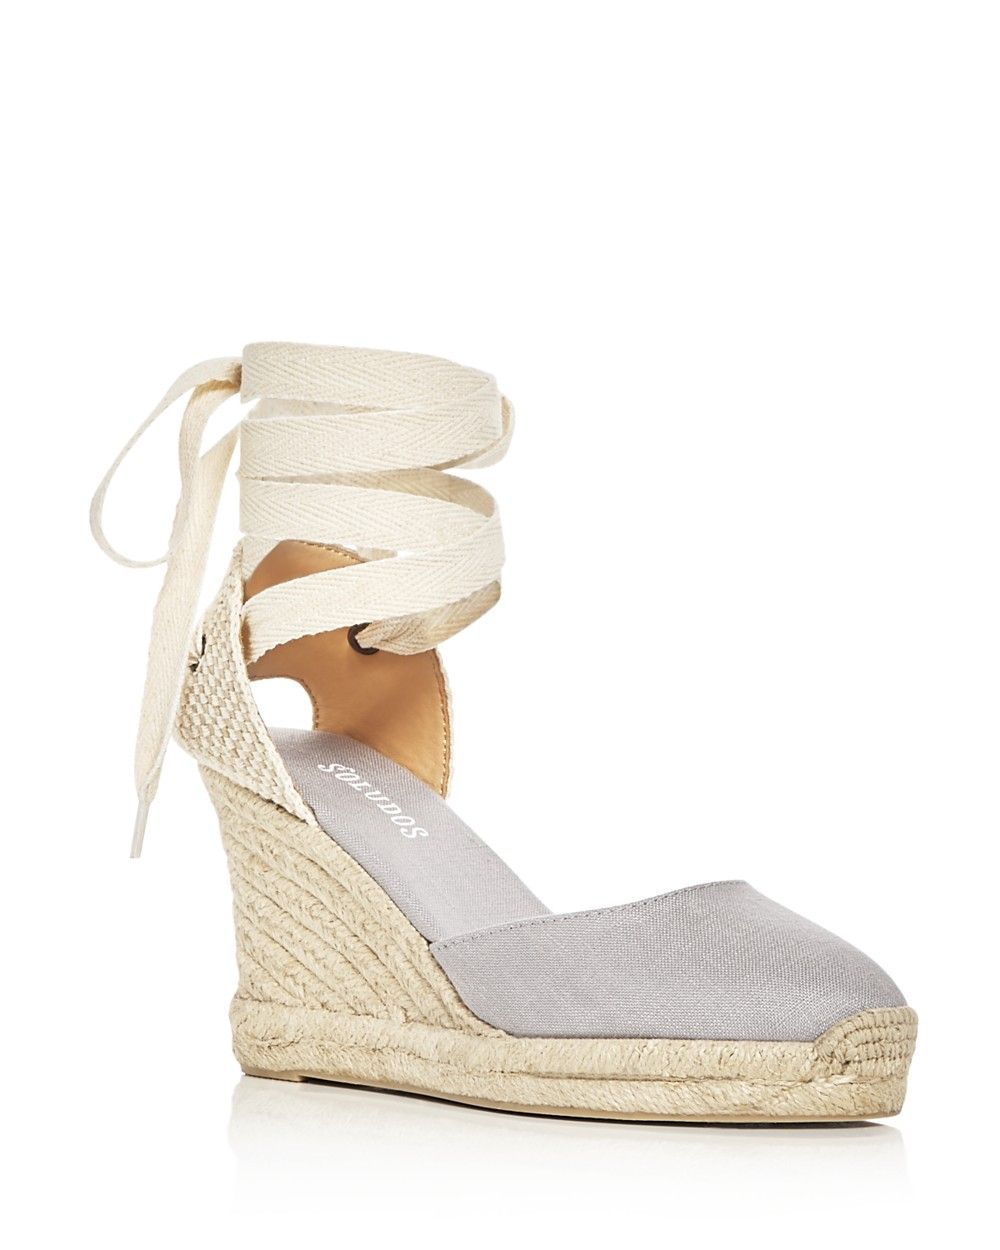 c44c39e62d1 SOLUDOS Soludos Women S Lace Up Espadrille Wedge Sandals.  soludos  shoes   all